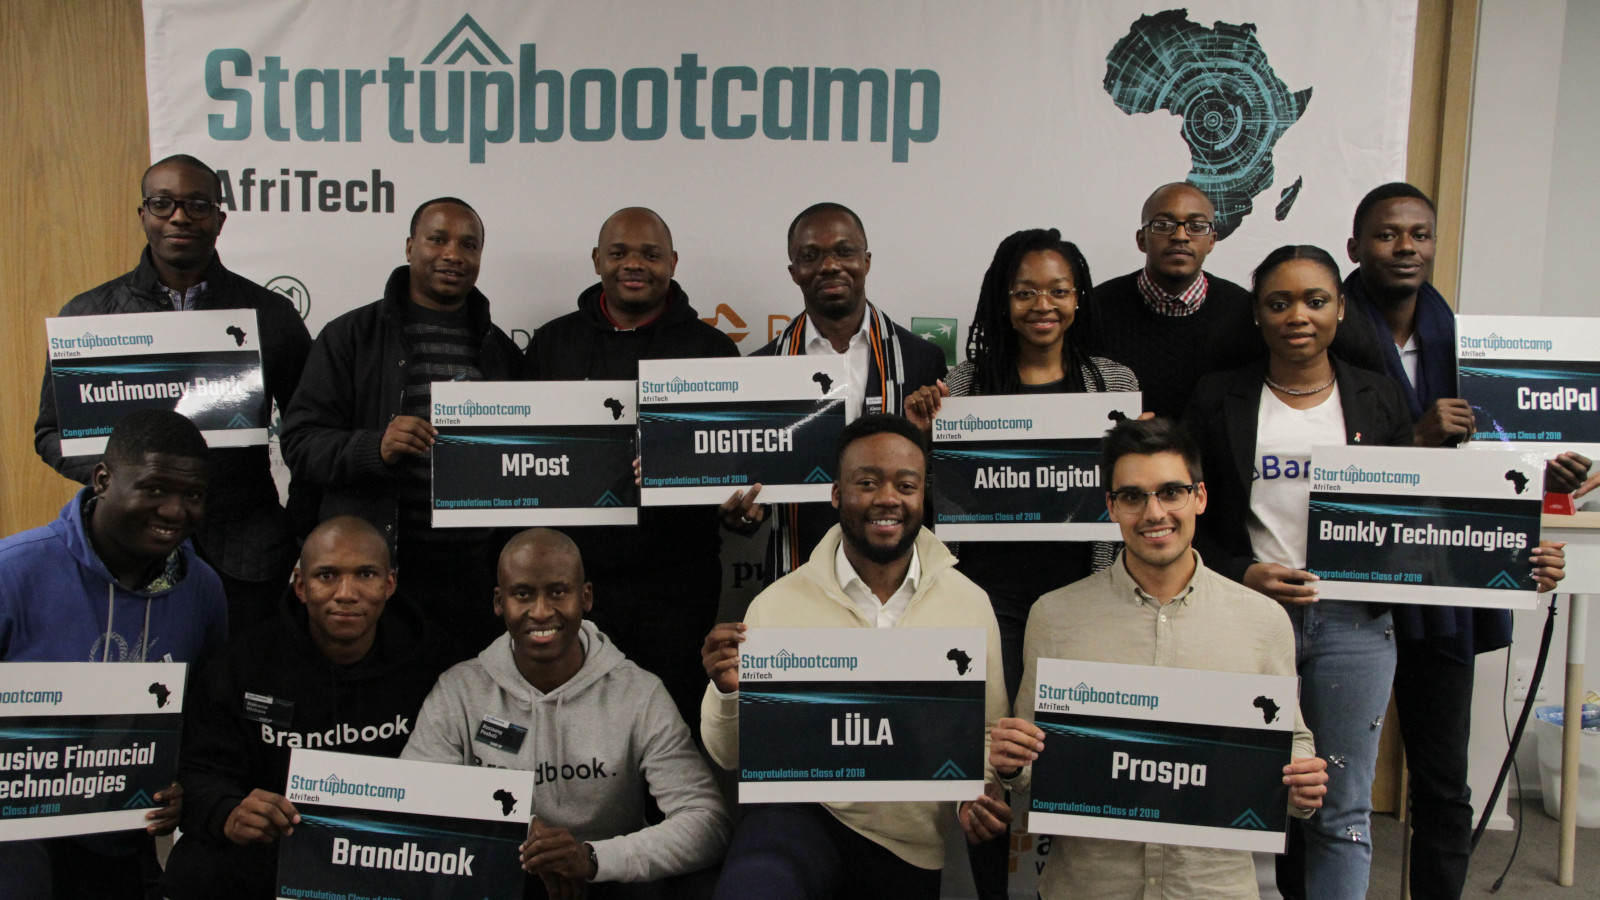 https://www.digitechgroupci.com/wp-content/uploads/2019/01/The-Top-10-African-Innovators-Selected-for-Global-Accelerator-Startupbootcamp-AfriTech-2018-1.jpg